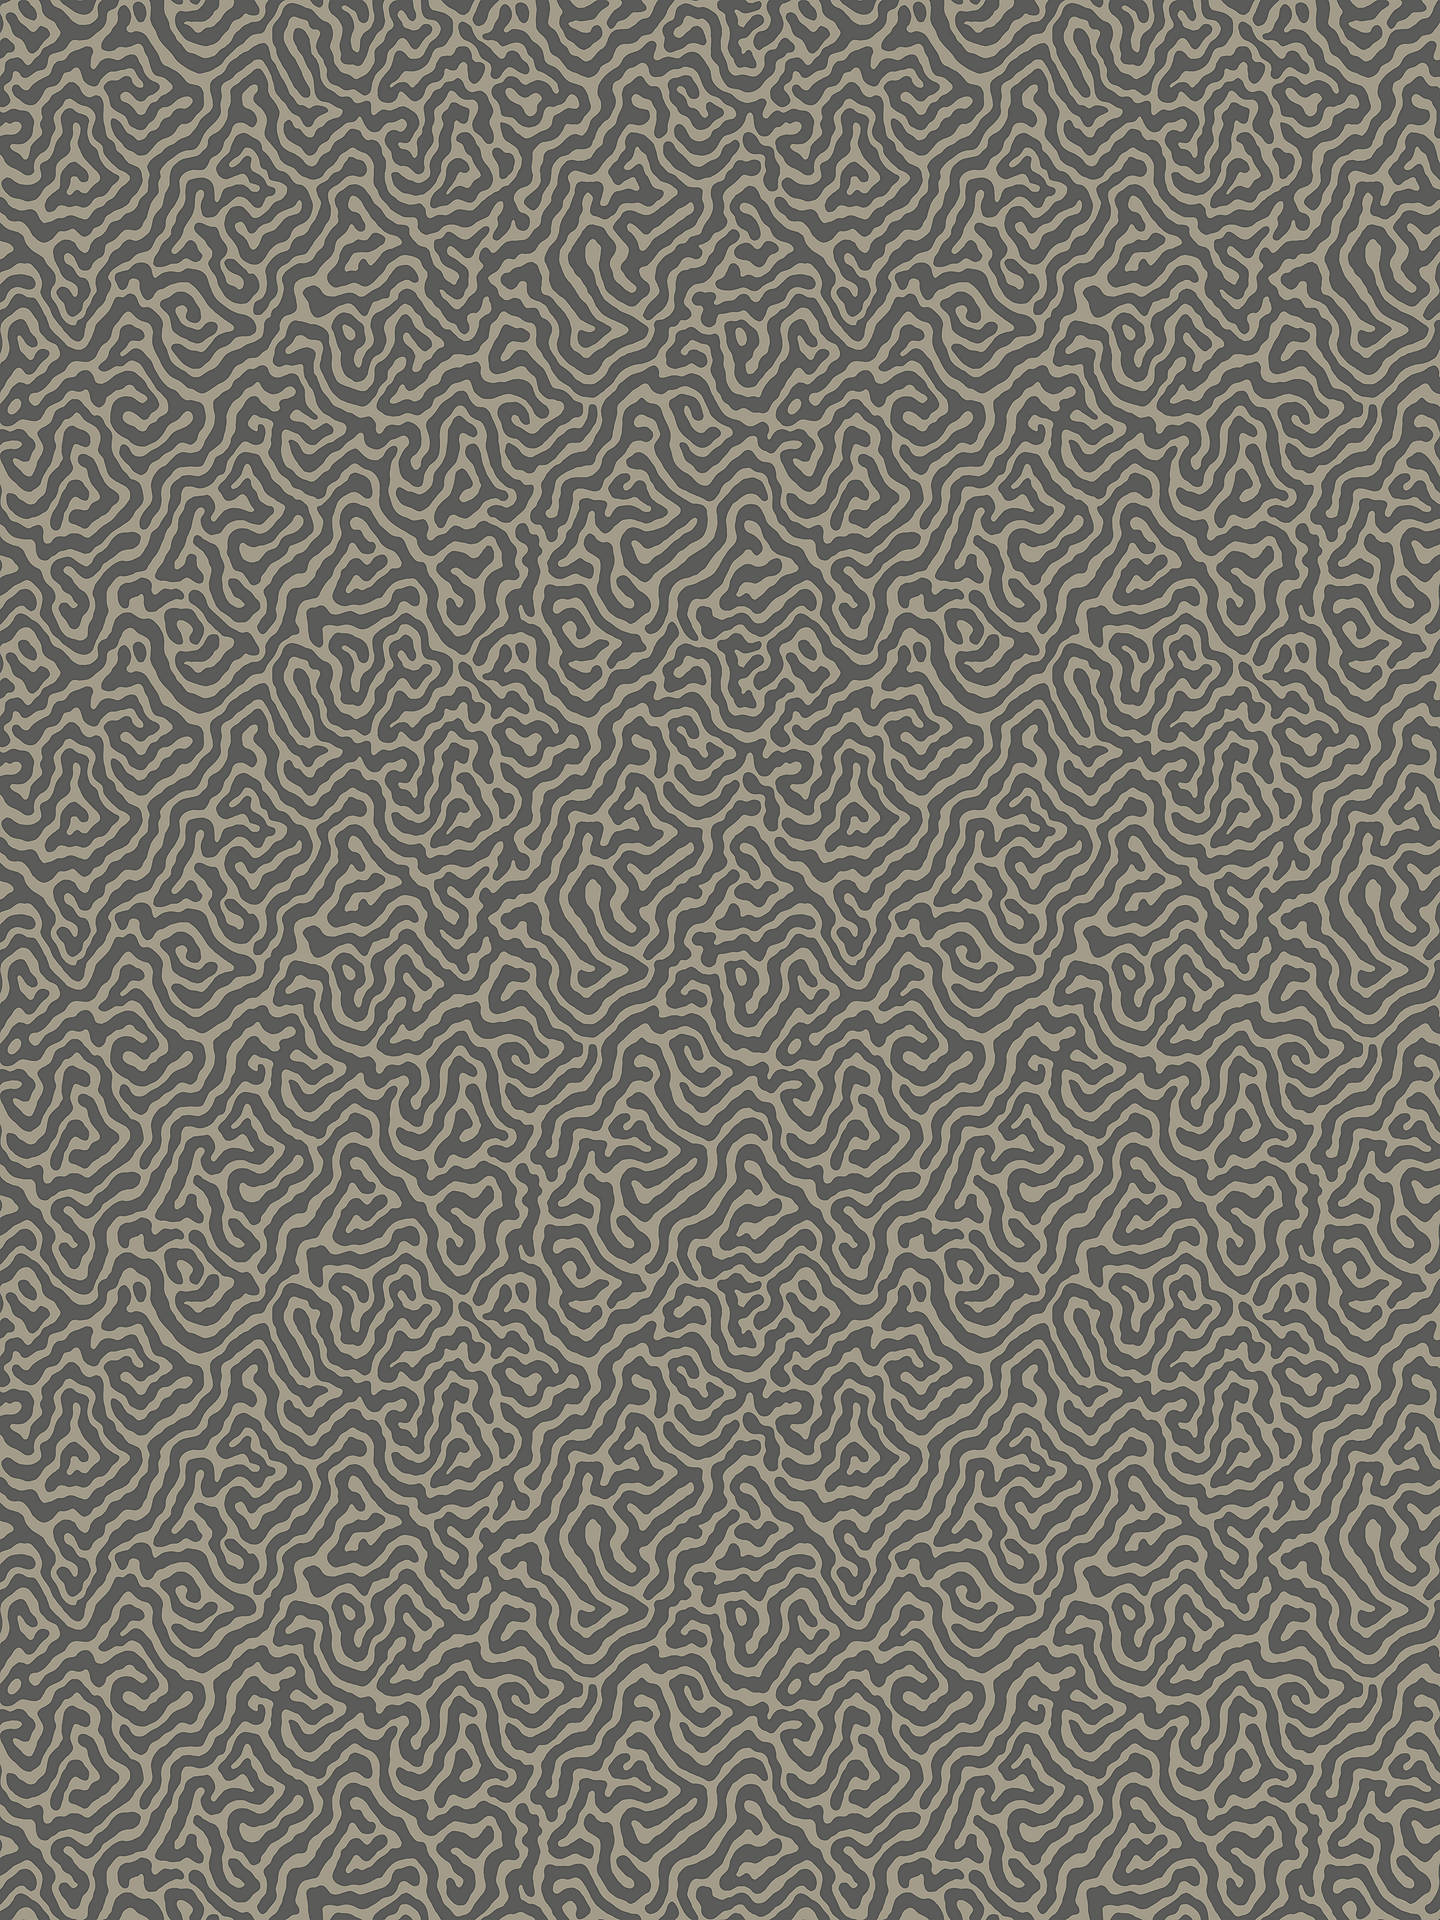 Buy Cole & Son Vermicelli Wallpaper, Grey / Black 107/4017 Online at johnlewis.com